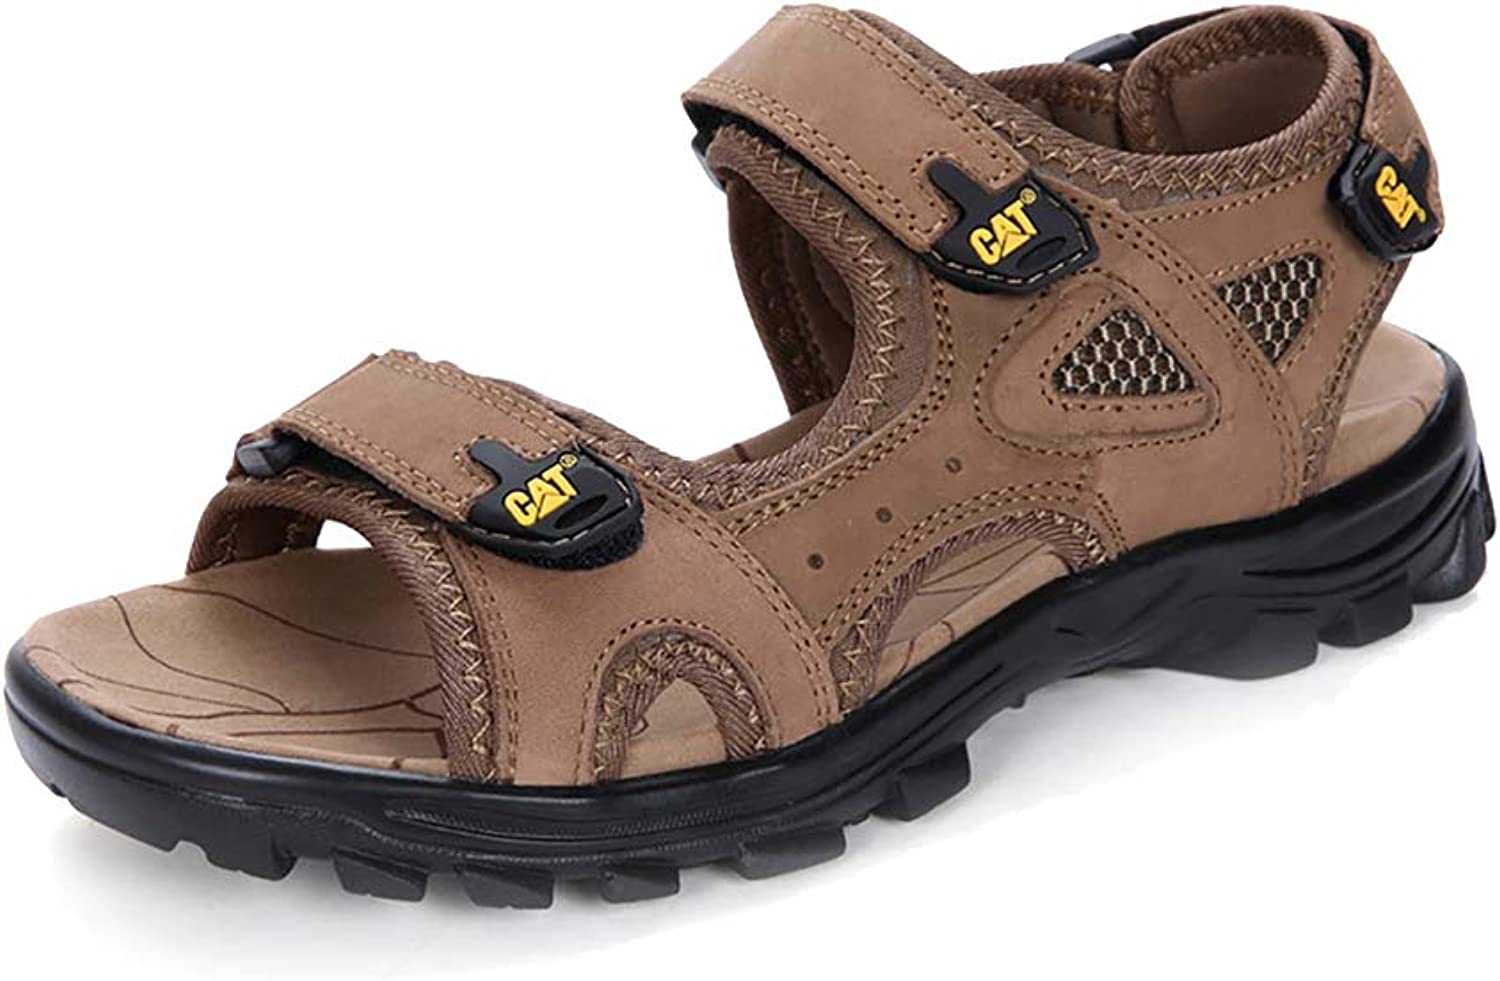 Mzq-yq Summer Large Size Sandals, Men's Leather shoes, Easy To Wear Off The Velcro, Non-slip Insoles Sole